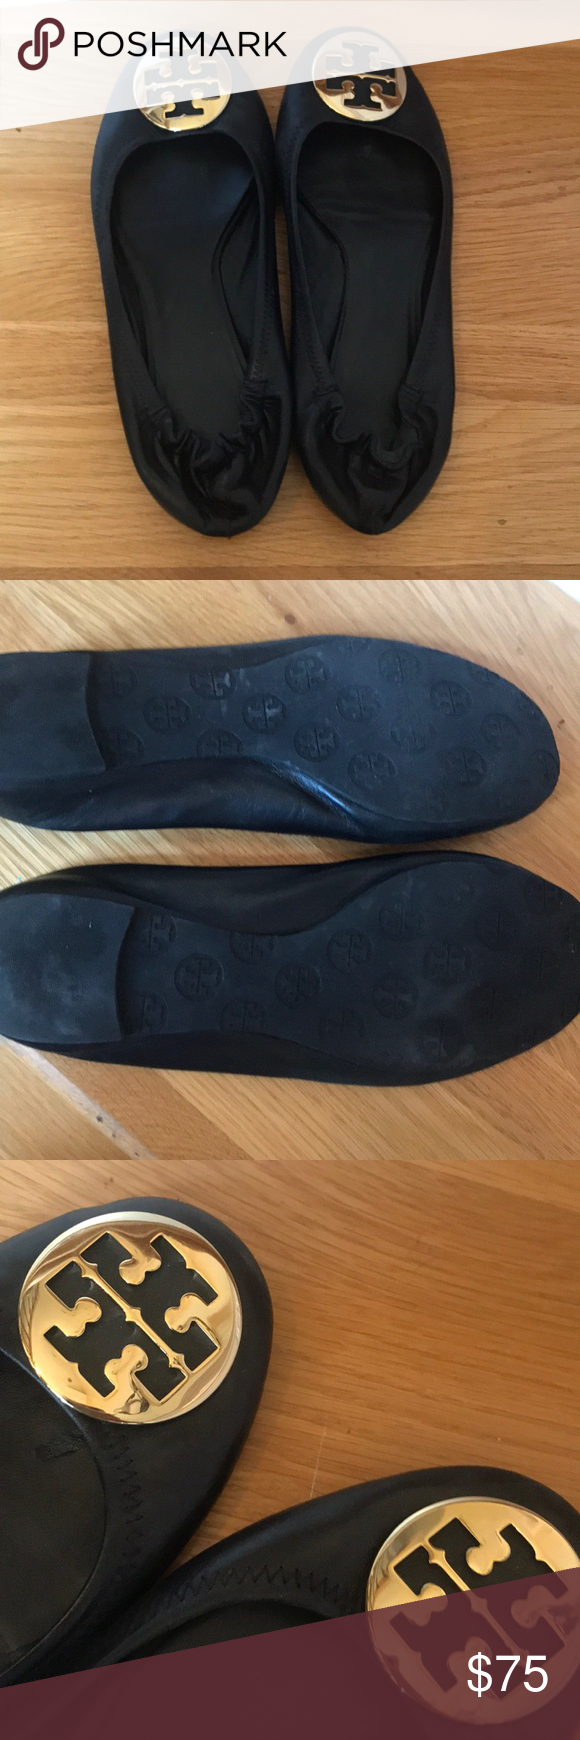 dd70f7f6849 Tory Burch Minnie flats size 9 A classic flat from Tory Burch. They are  authentic